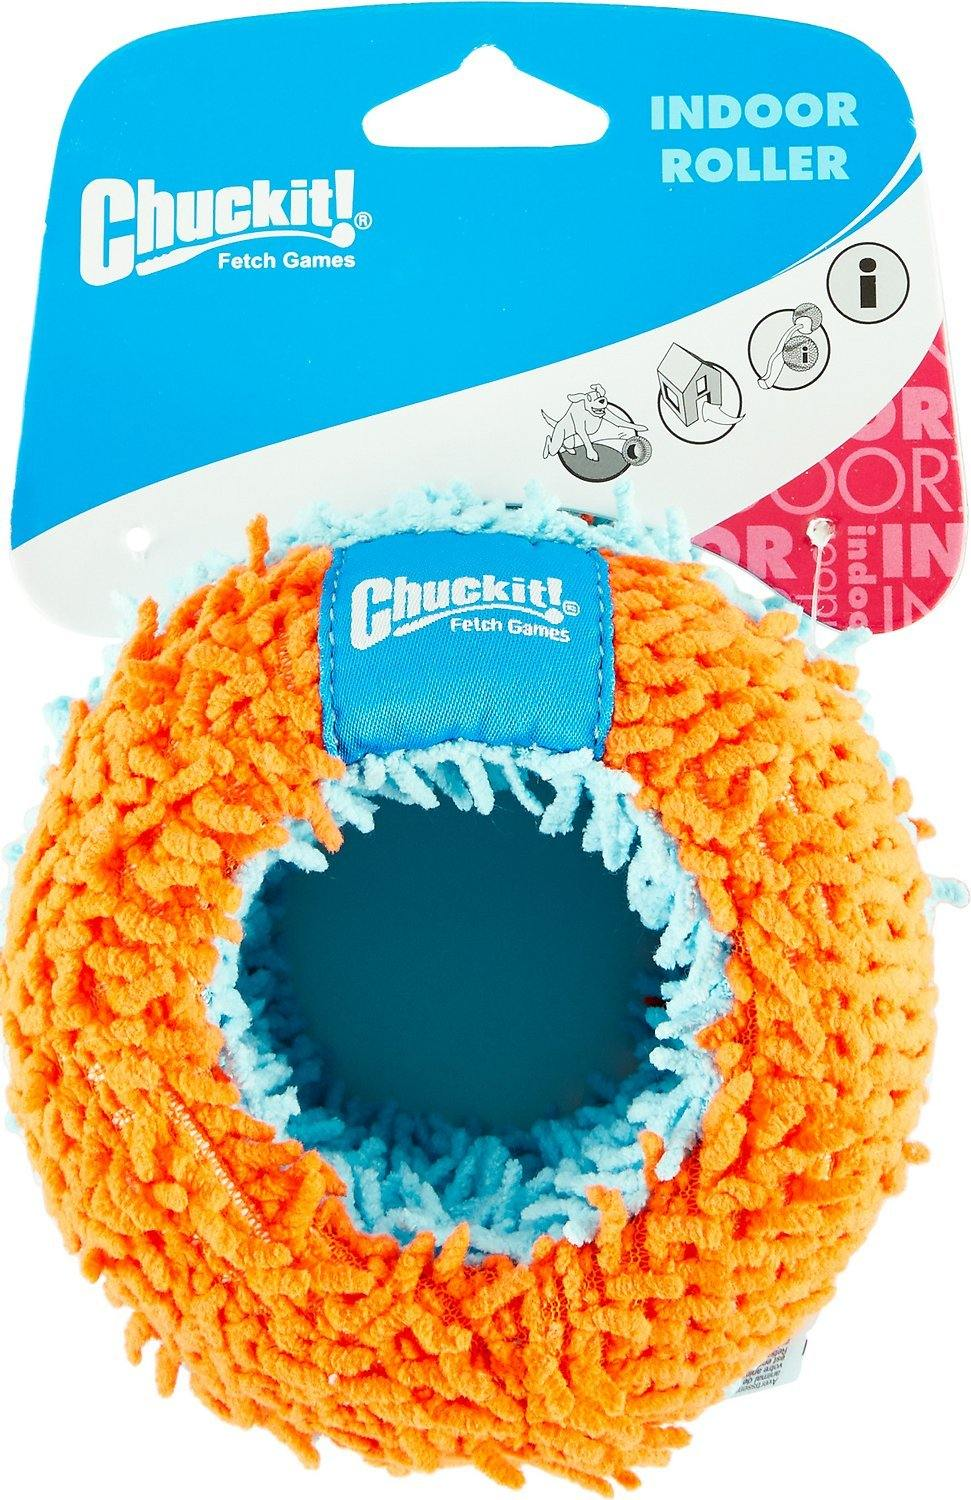 Canine's World Dog Disc Toys Chuckit! Indoor Roller